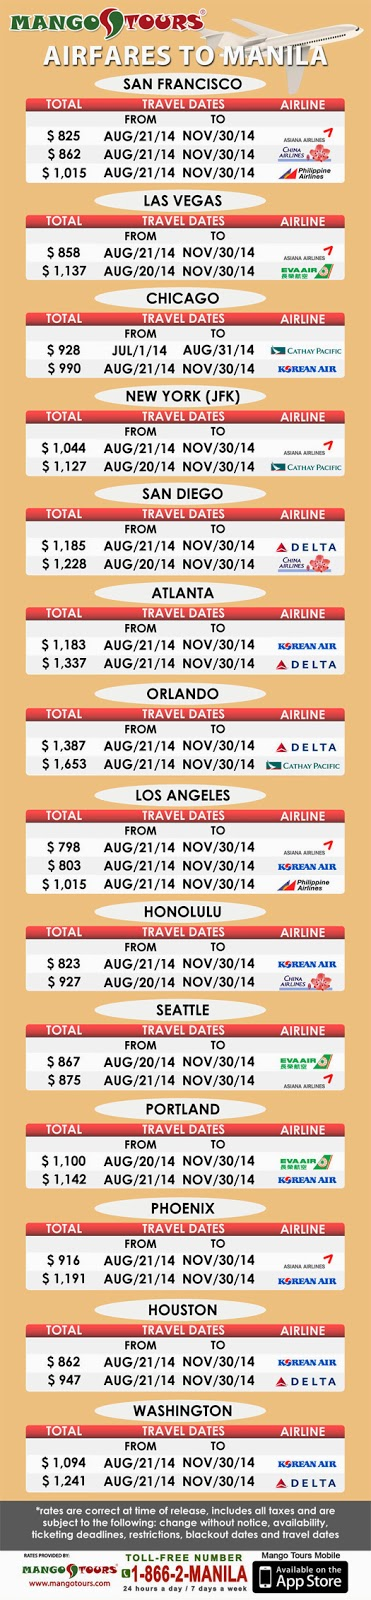 Current airfares to Manila as of June 7, 2014